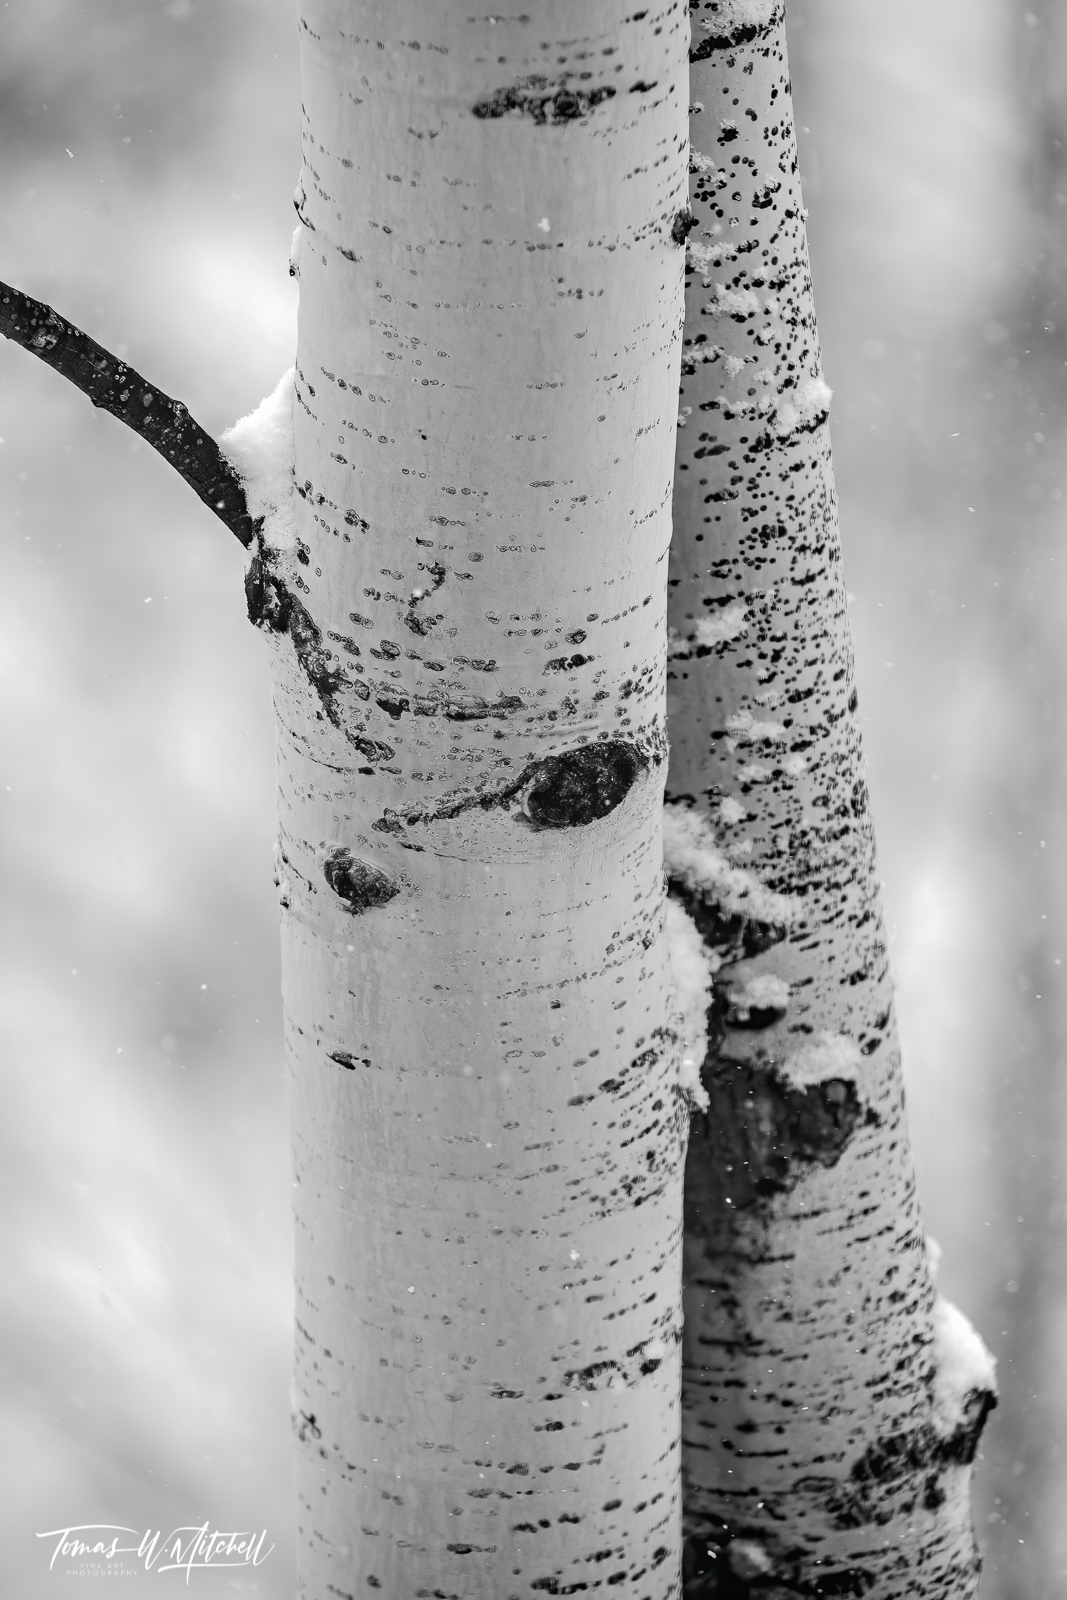 UINTA-WASATCH-CACHE NATIONAL FOREST, UTAH, limited edition, fine art, prints, snowstorm, winter, aspen trees, snow, photograph, black and white, photo